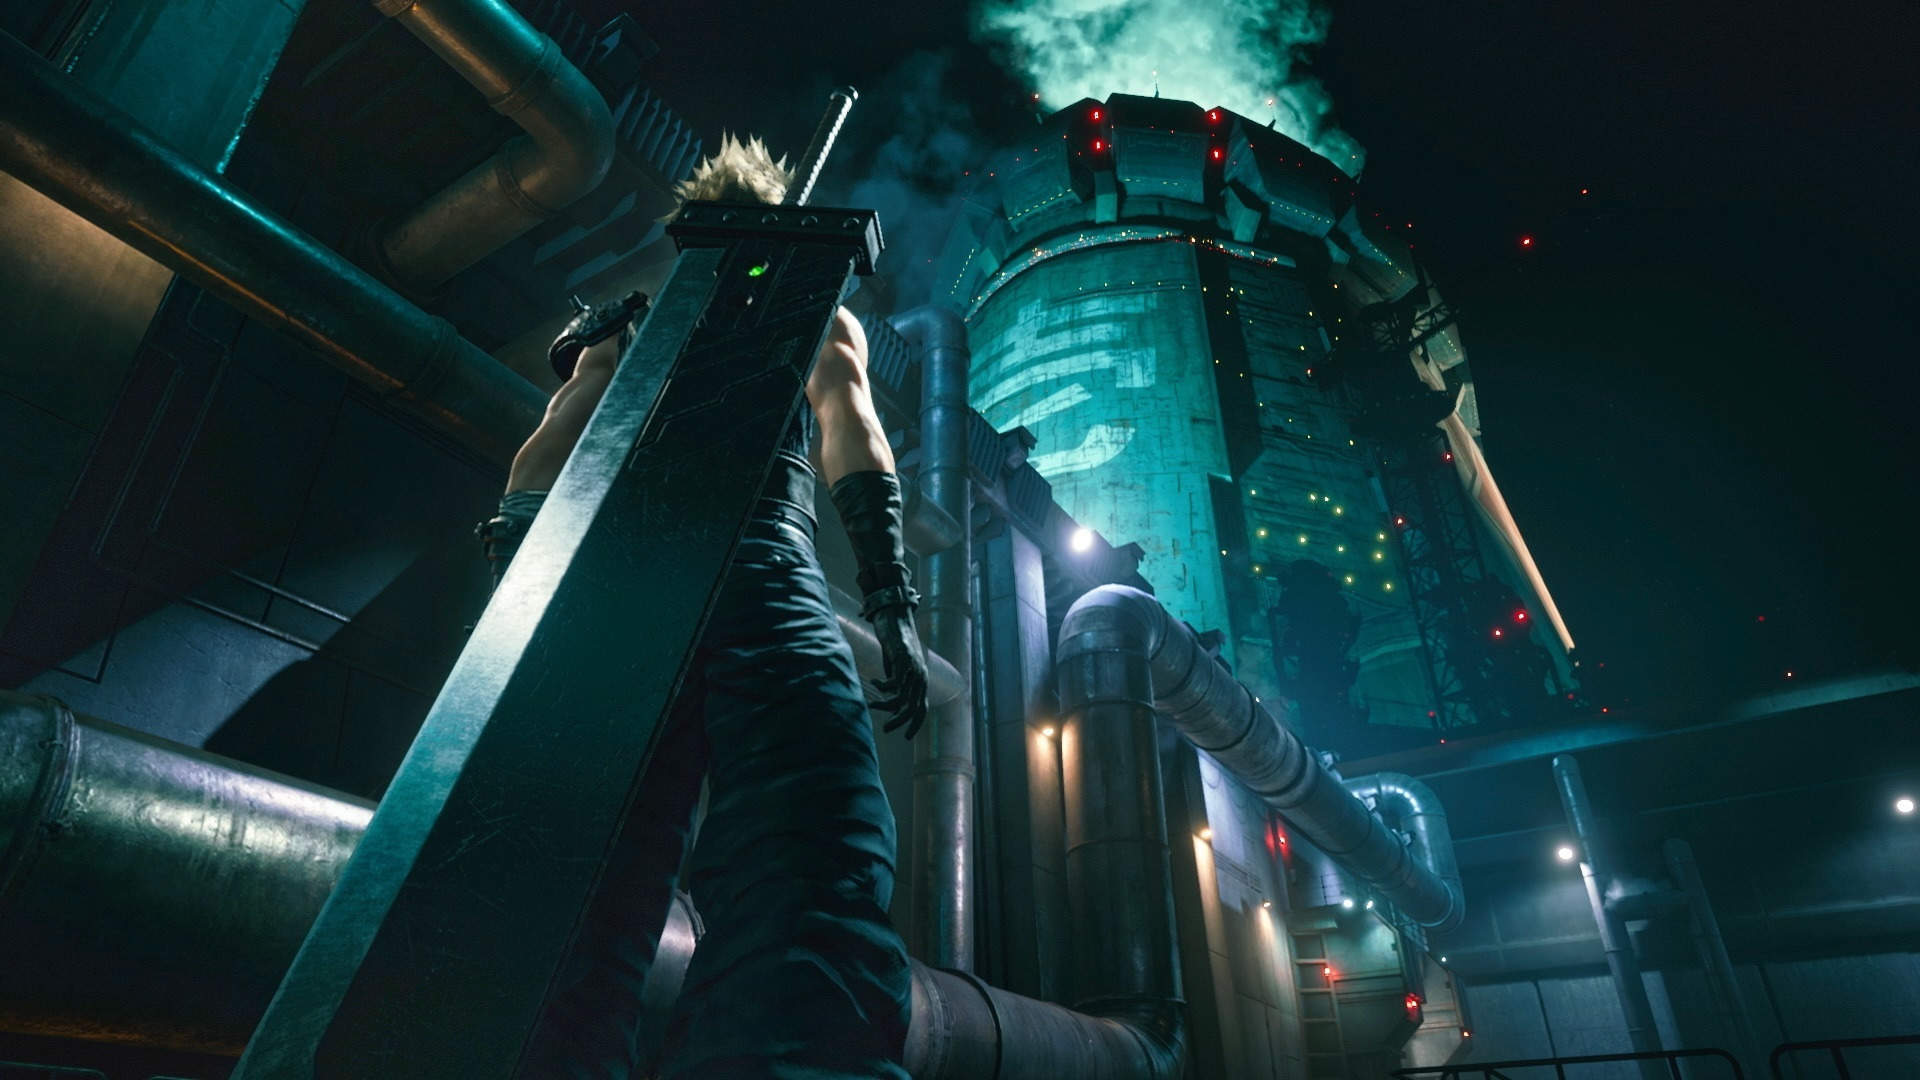 How To Get The Final Fantasy 7 Remake Ps4 Theme Shacknews